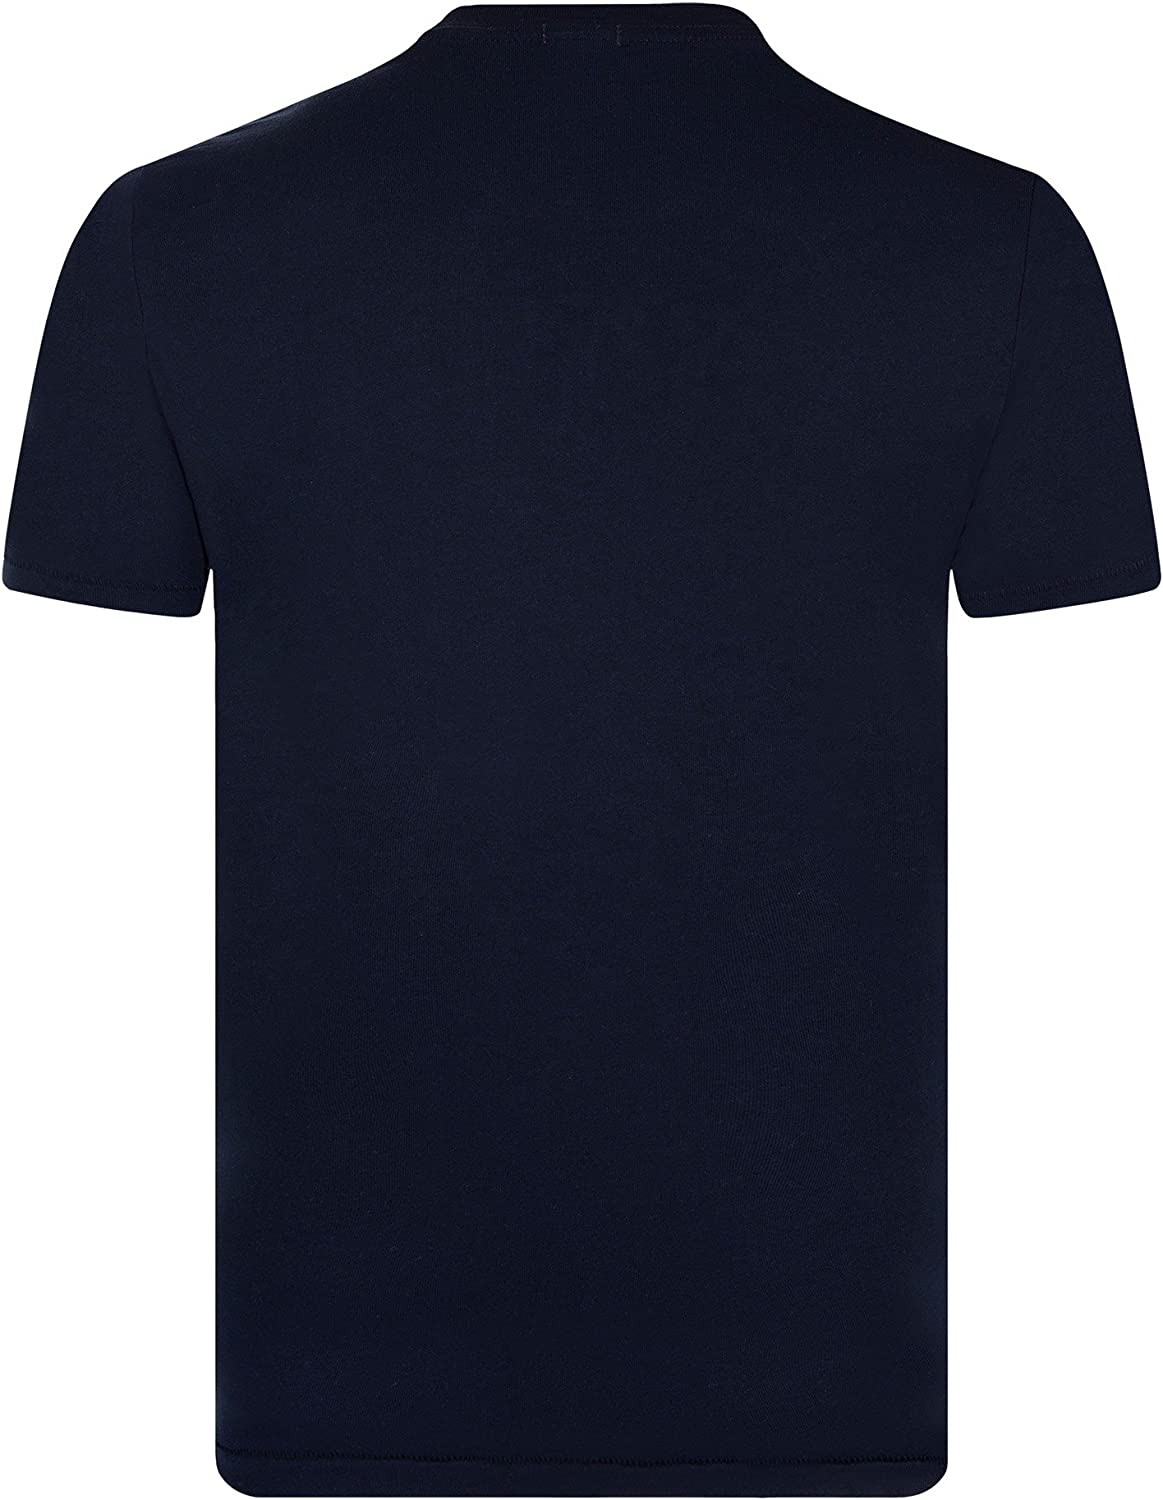 ABERCROMBIE & FITCH - Camiseta Manga Corta Muscle Fit Para Hombre ...